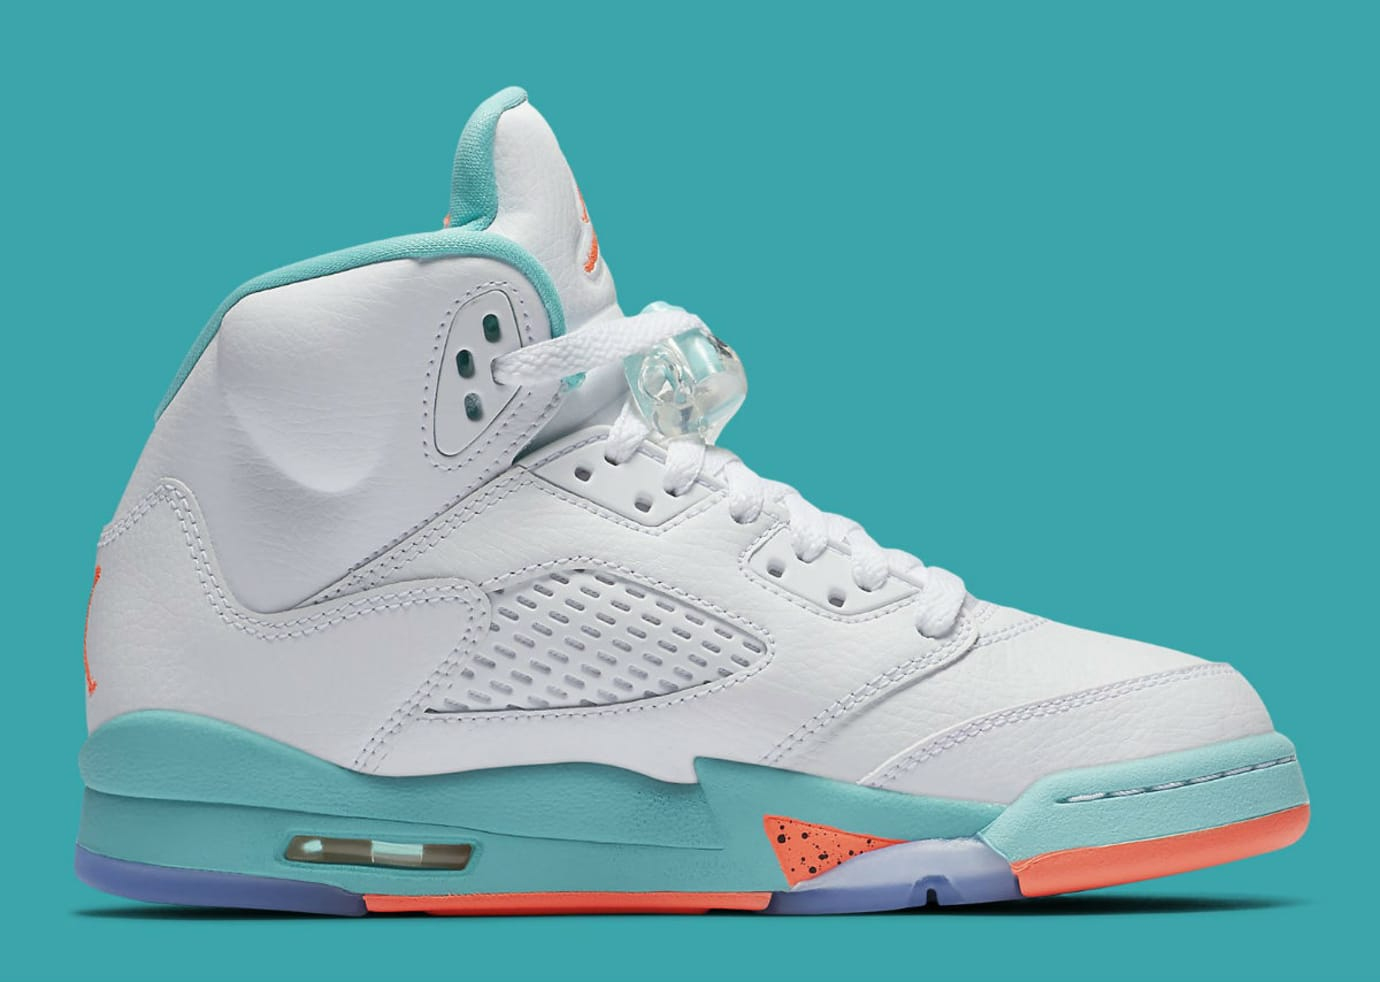 size 40 c5e30 2da0e Image via Nike Air Jordan 5 V GS White Crimson Pulse Light Aqua Release  Date 440892-100 Medial